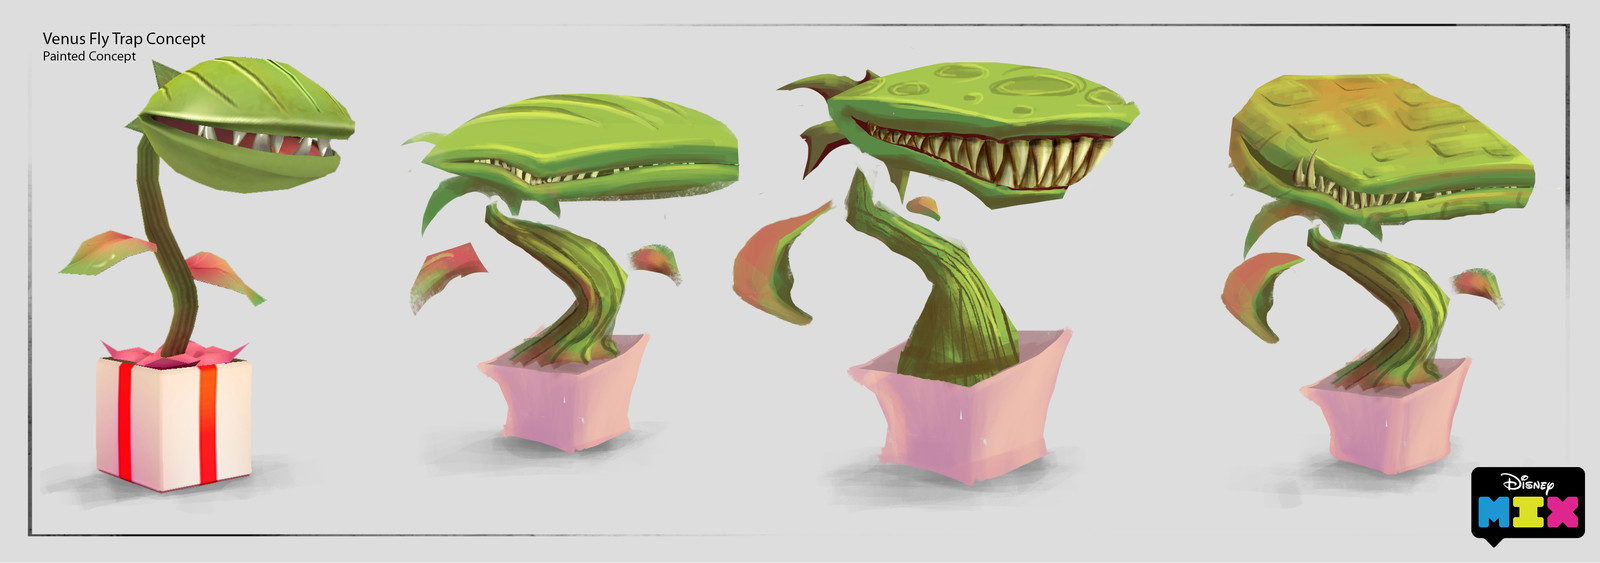 """Concept to """"Mixify"""" Venus fly trap Mix Character"""